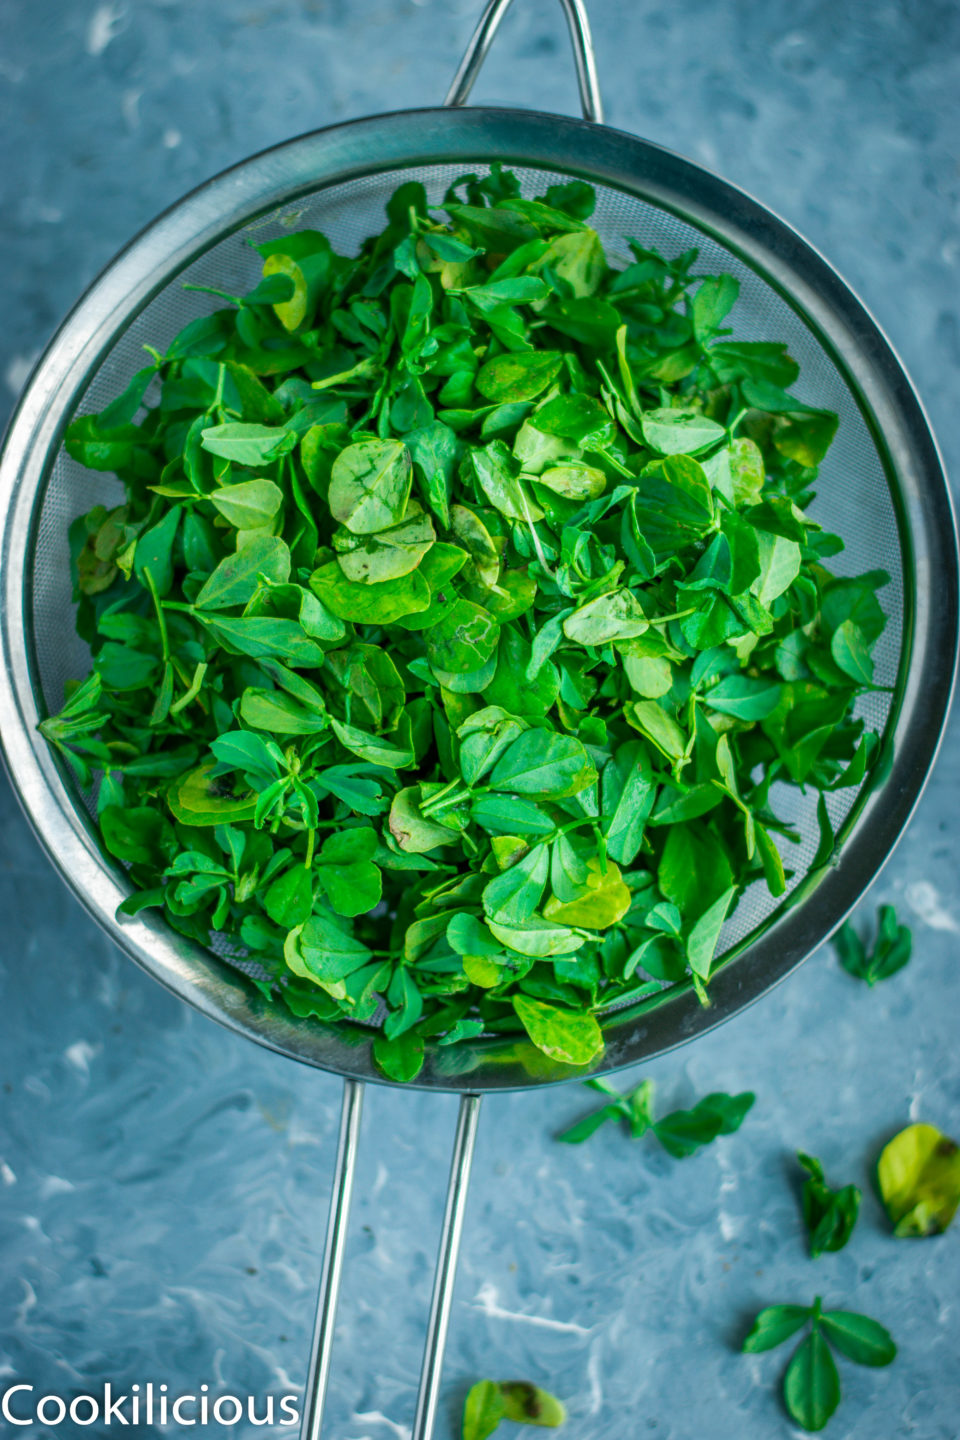 methi leaves in a strainer being used to make Methi Matar Malai